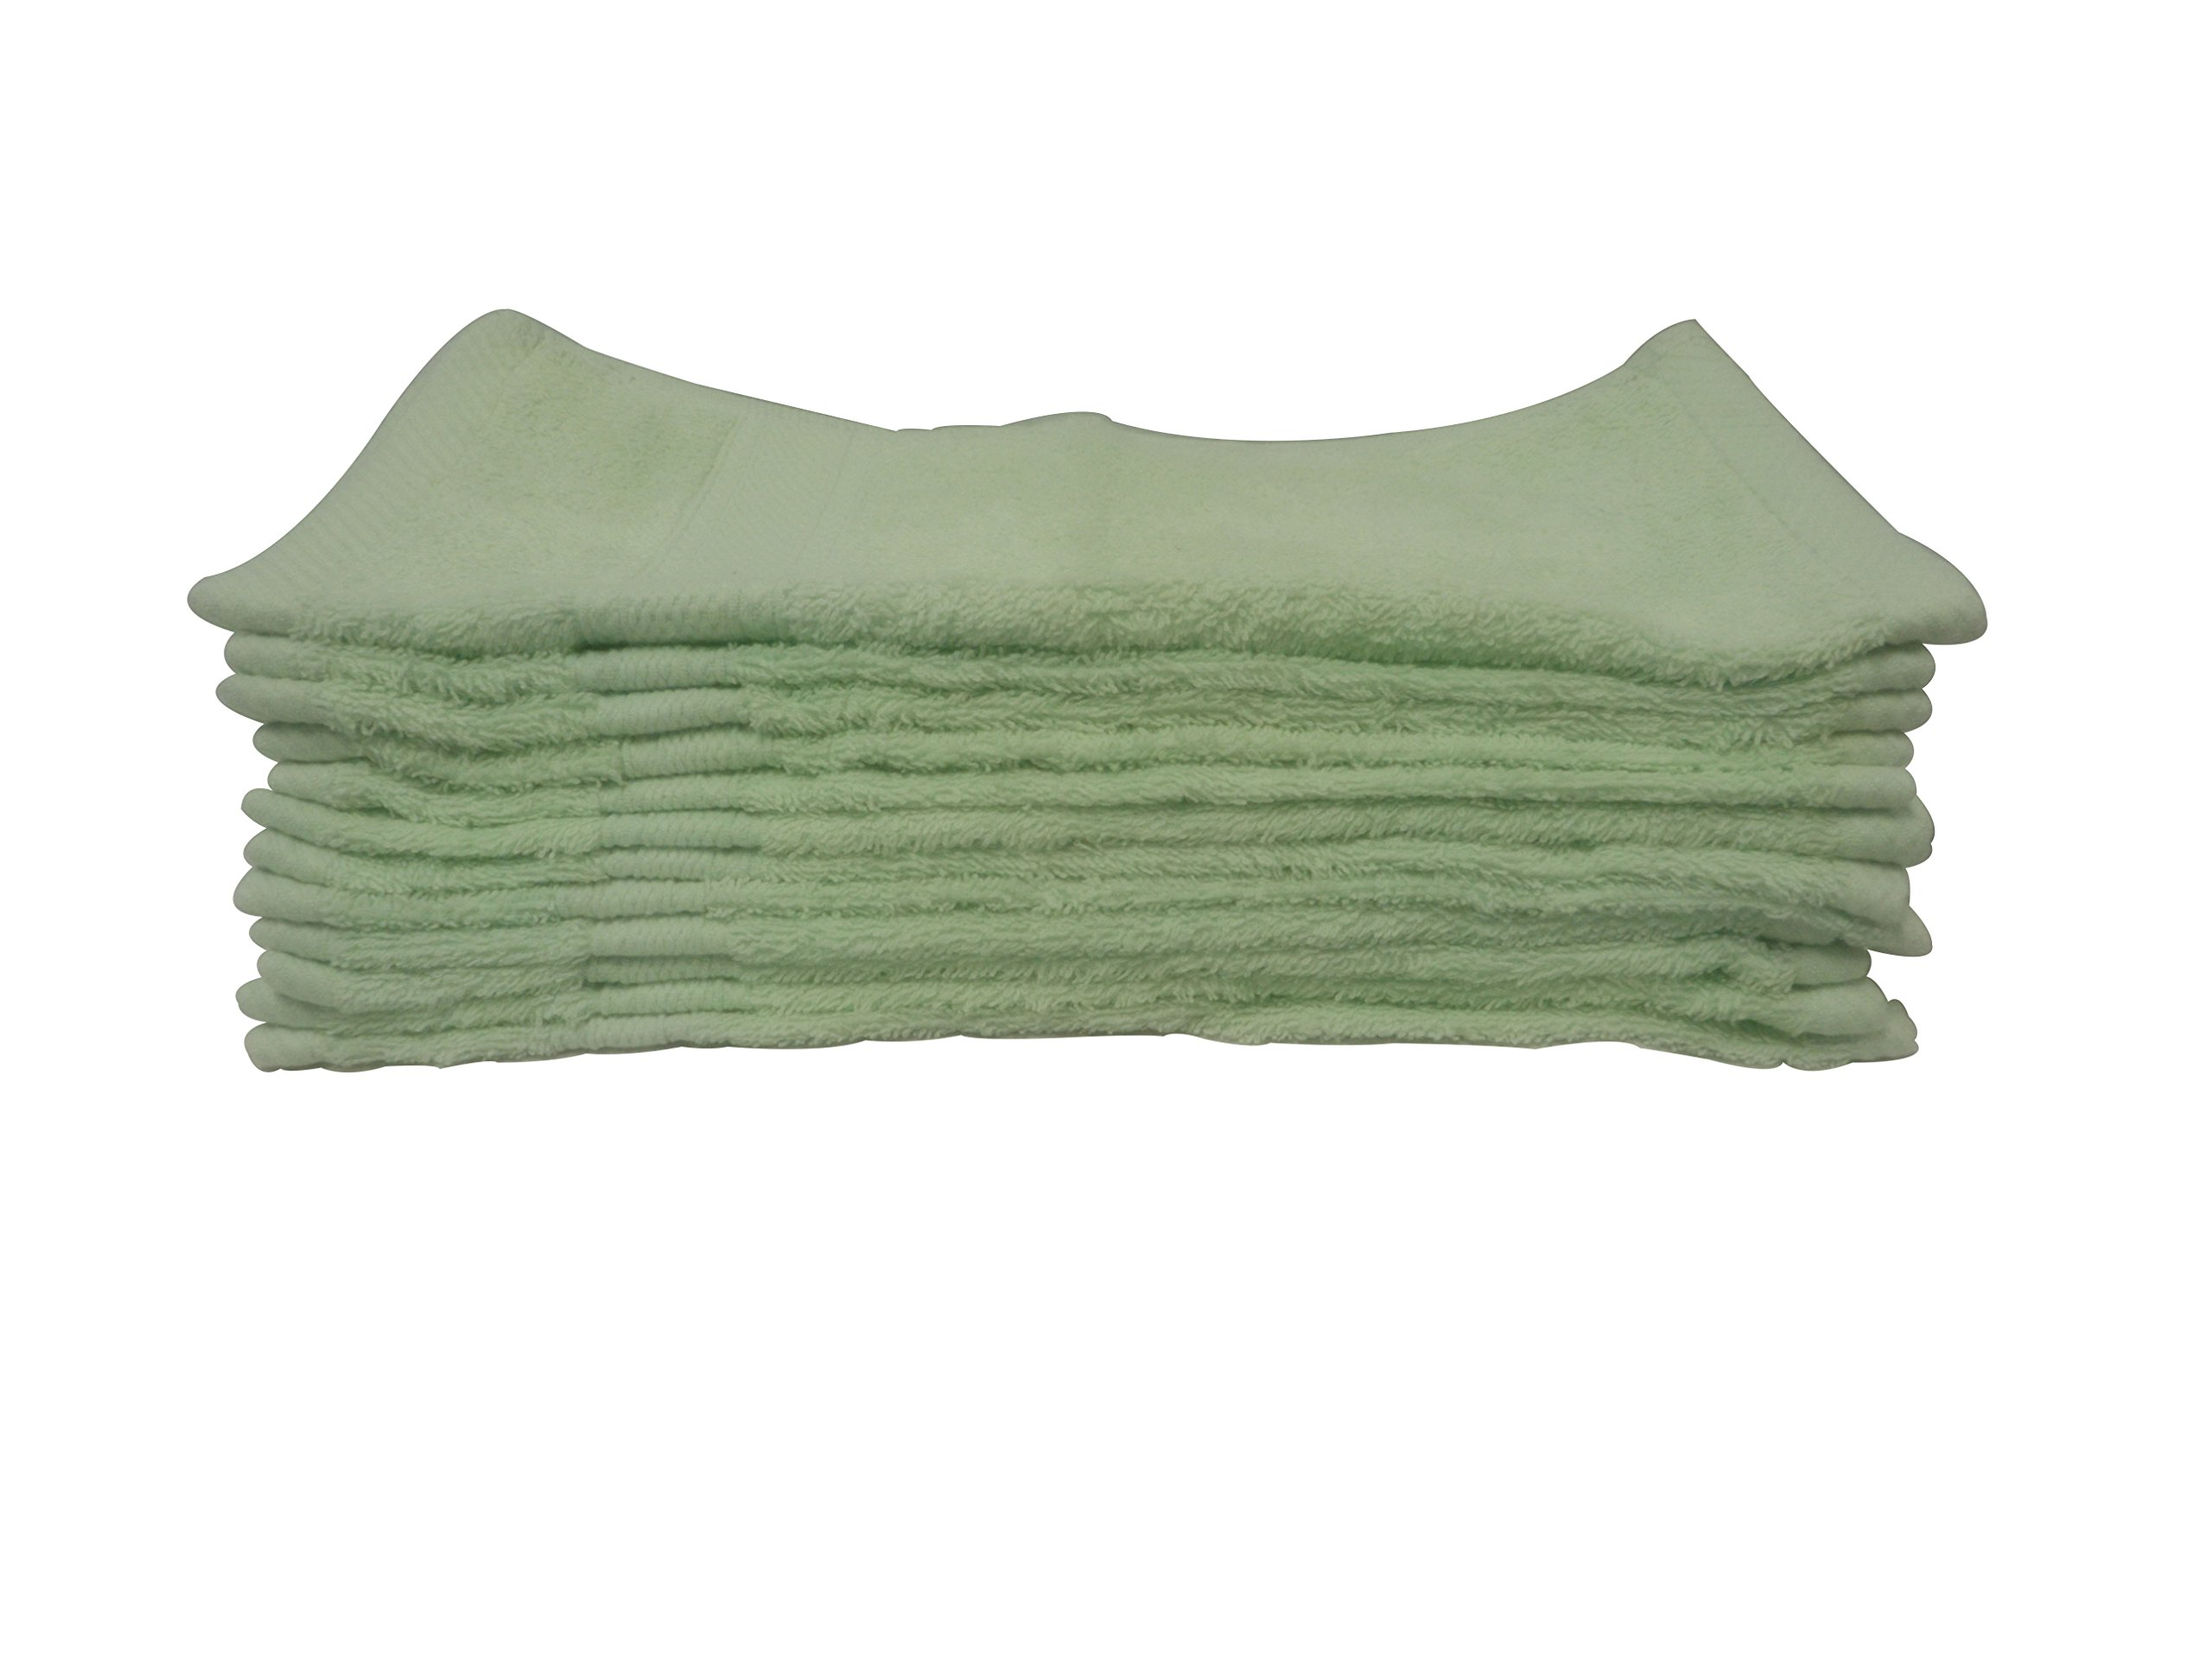 Livingston Home Luxurious Ultra Soft 100Percent Genuine Cotton 13''X13'' Wash Cloth -Highly Absorbent Multi-Purpose Extra Soft Baby, Face, Hand, Gym Spa Towels.Aqua/Mint,12Pcs-Pack